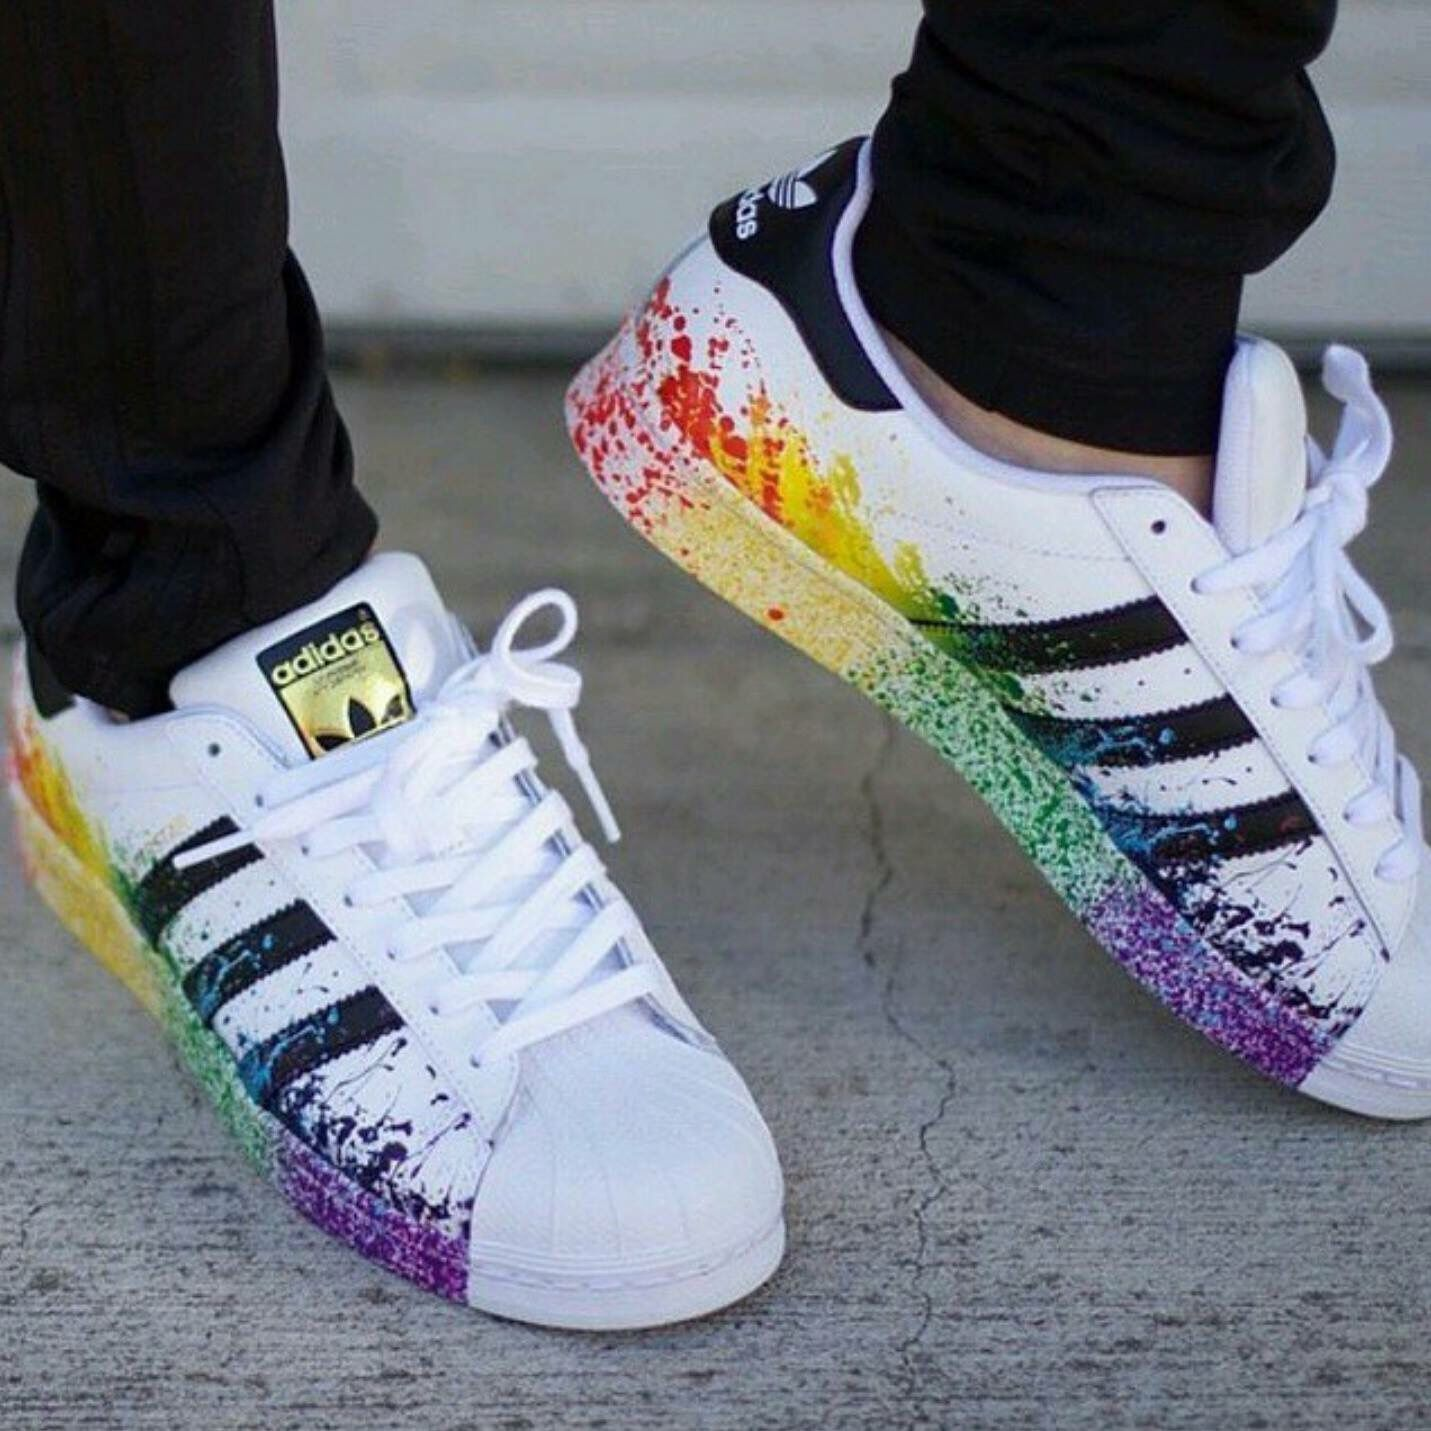 Unisex Adidas Superstar Festival Pack Runnning Shoes White Golden Red Casual Wholesale Hightop